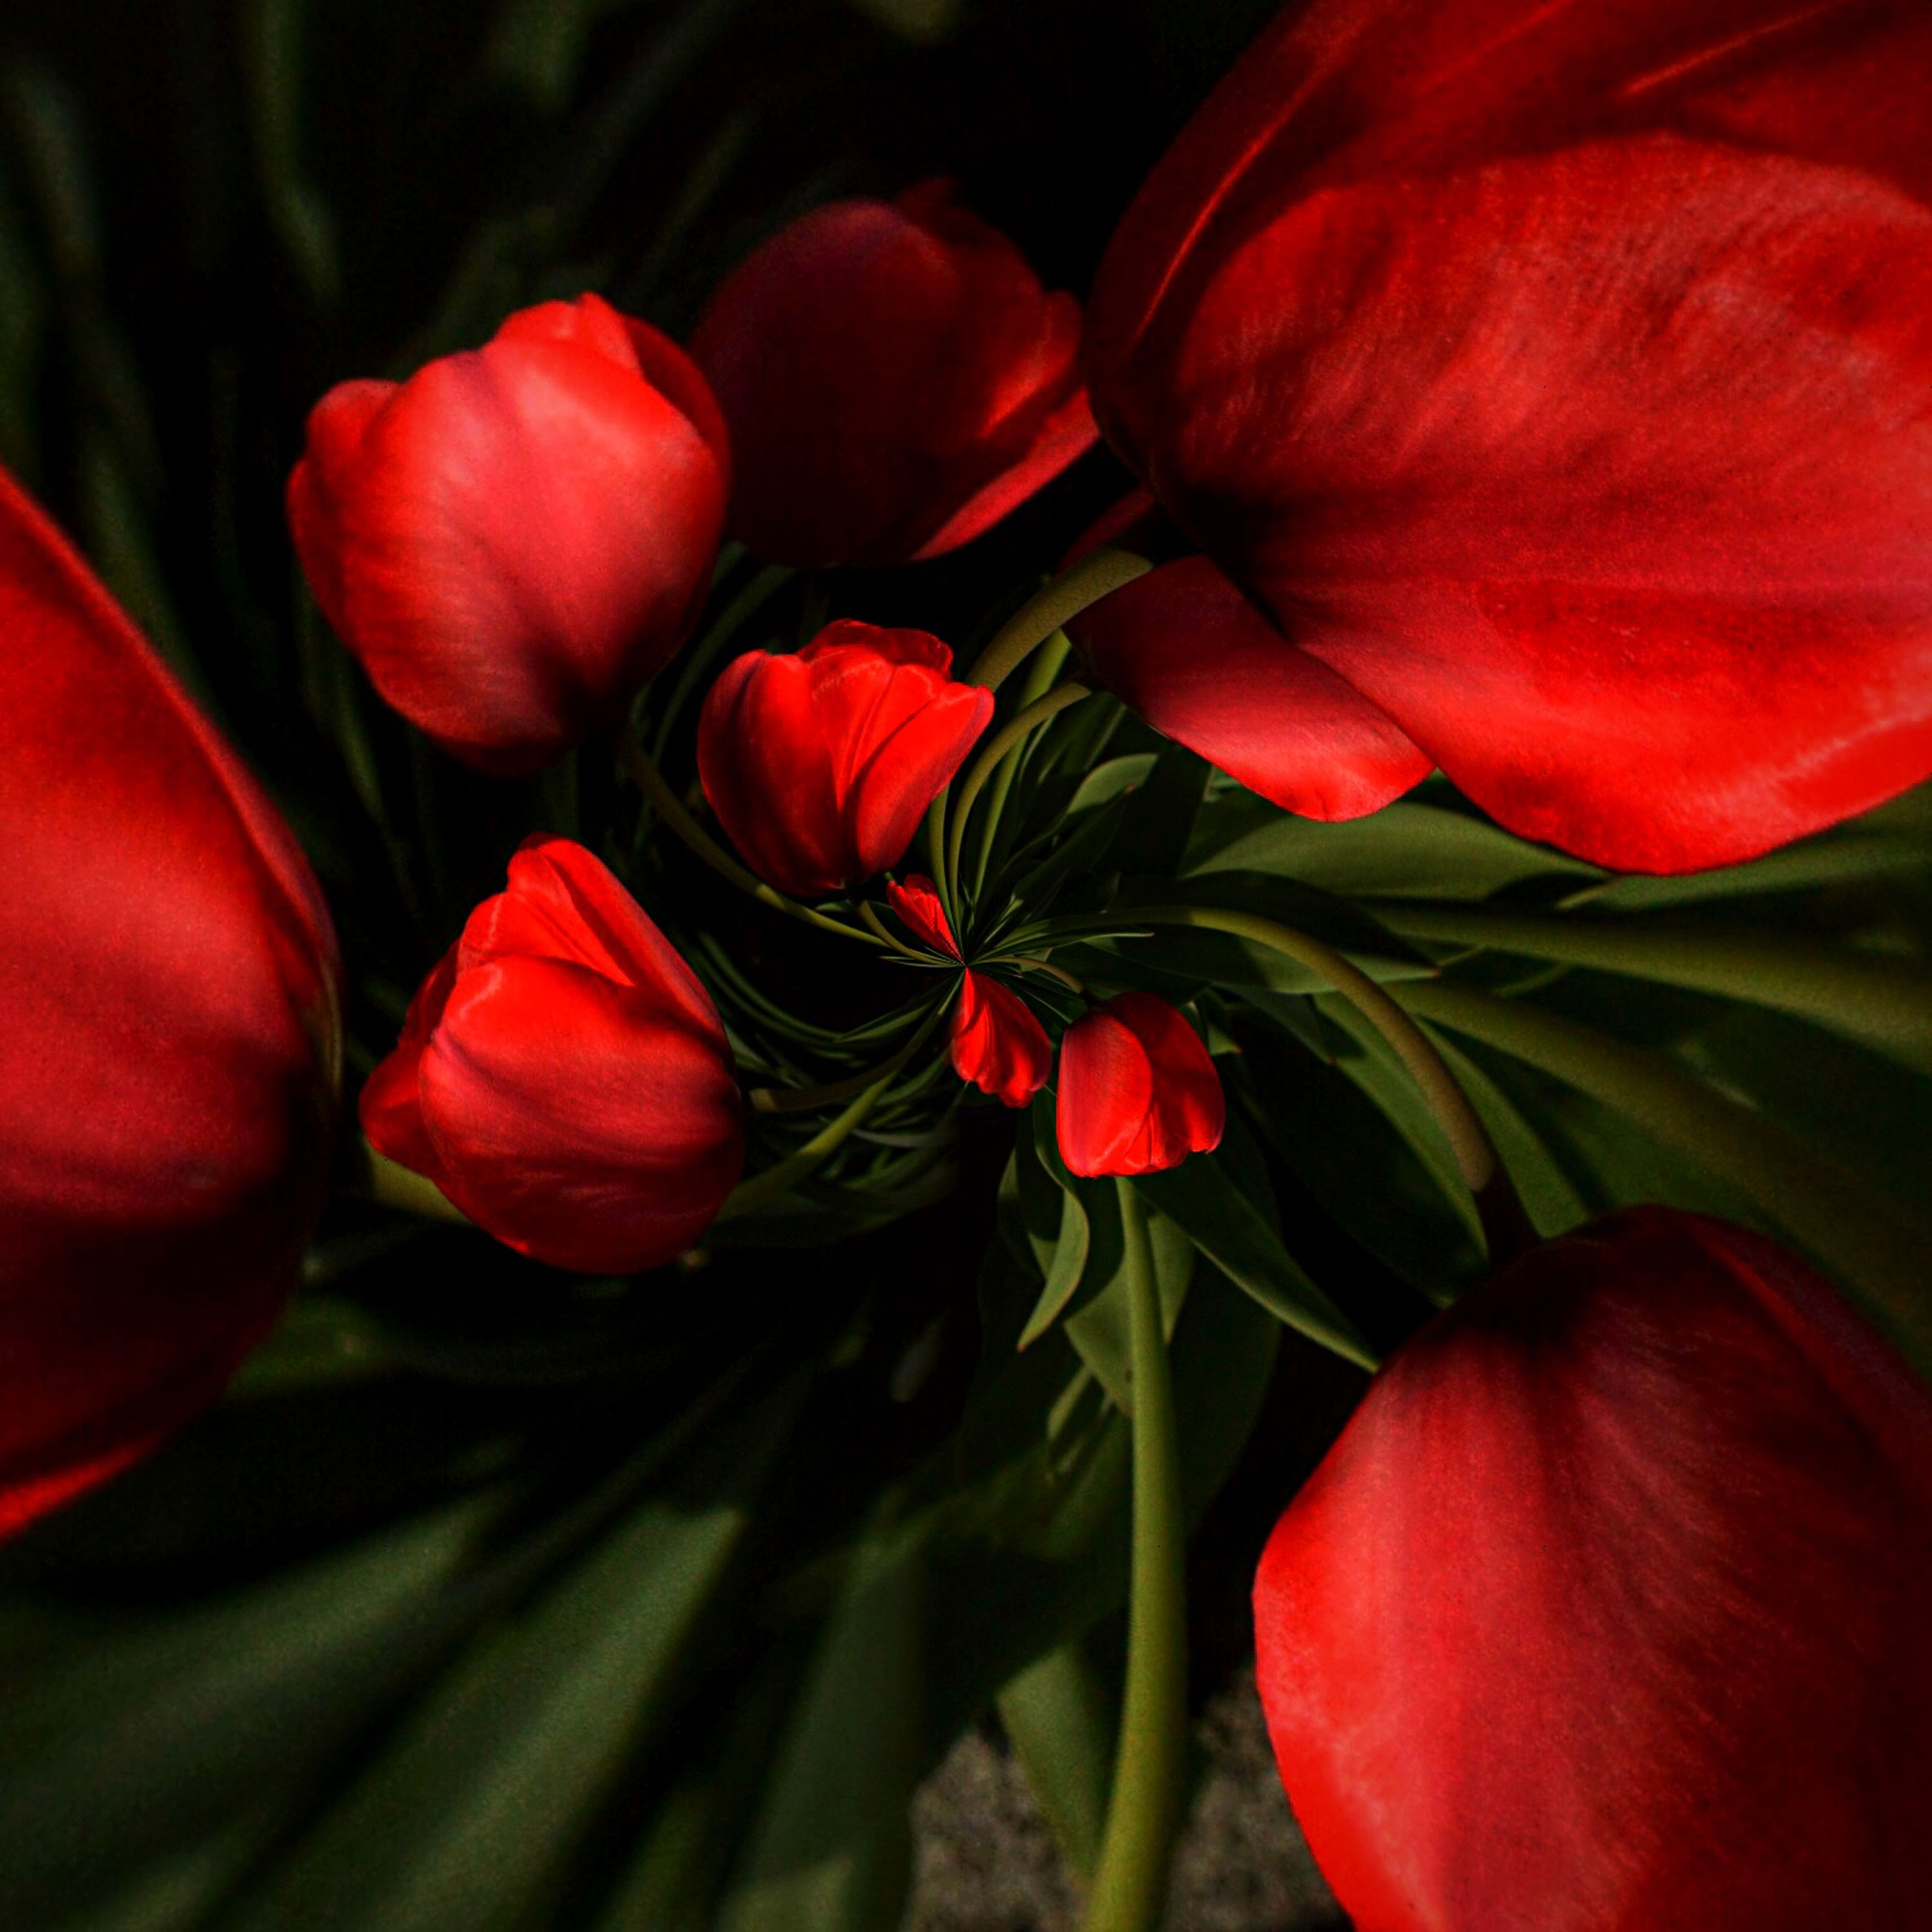 red, flower, freshness, petal, flower head, tulip, growth, fragility, beauty in nature, close-up, nature, plant, blooming, no people, vibrant color, focus on foreground, stem, outdoors, blossom, day